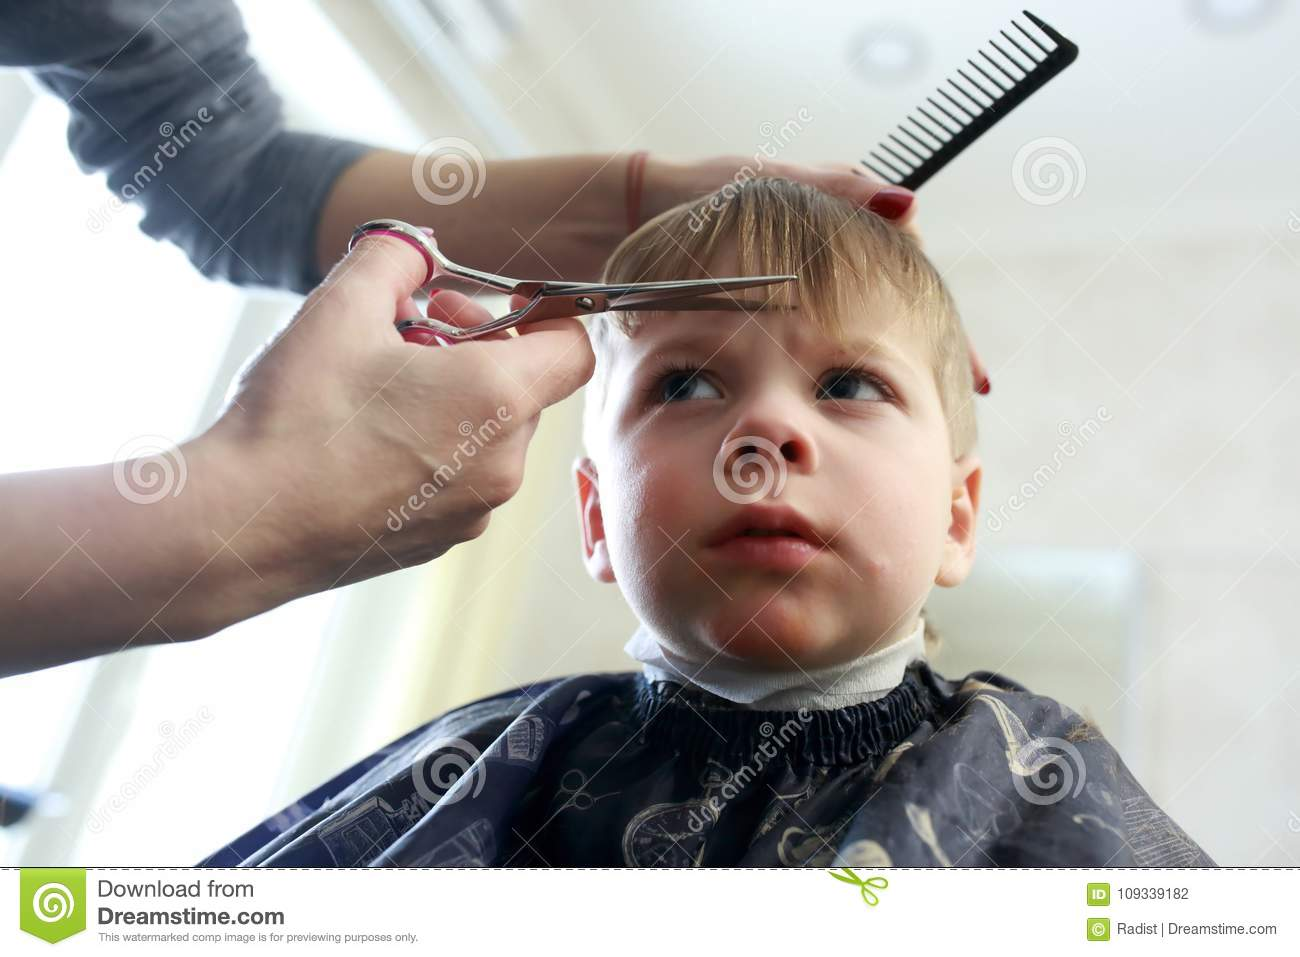 Kid Getting A Haircut Stock Photo Image Of Caucasian 109339182